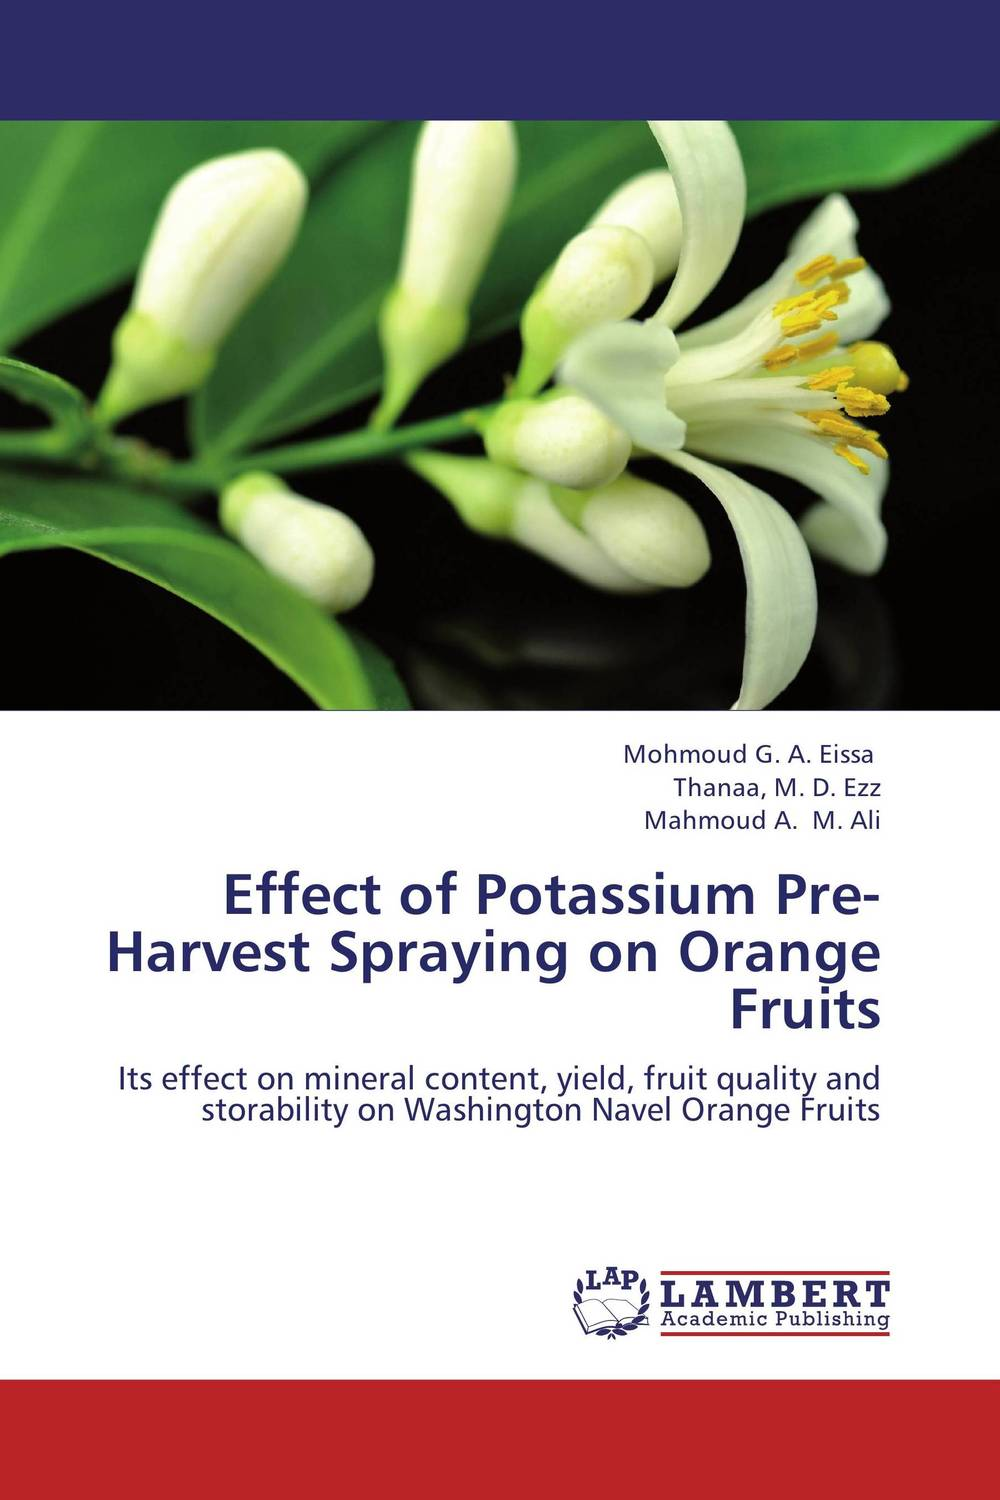 Effect of Potassium Pre-Harvest Spraying on Orange Fruits remarkable trees of the world